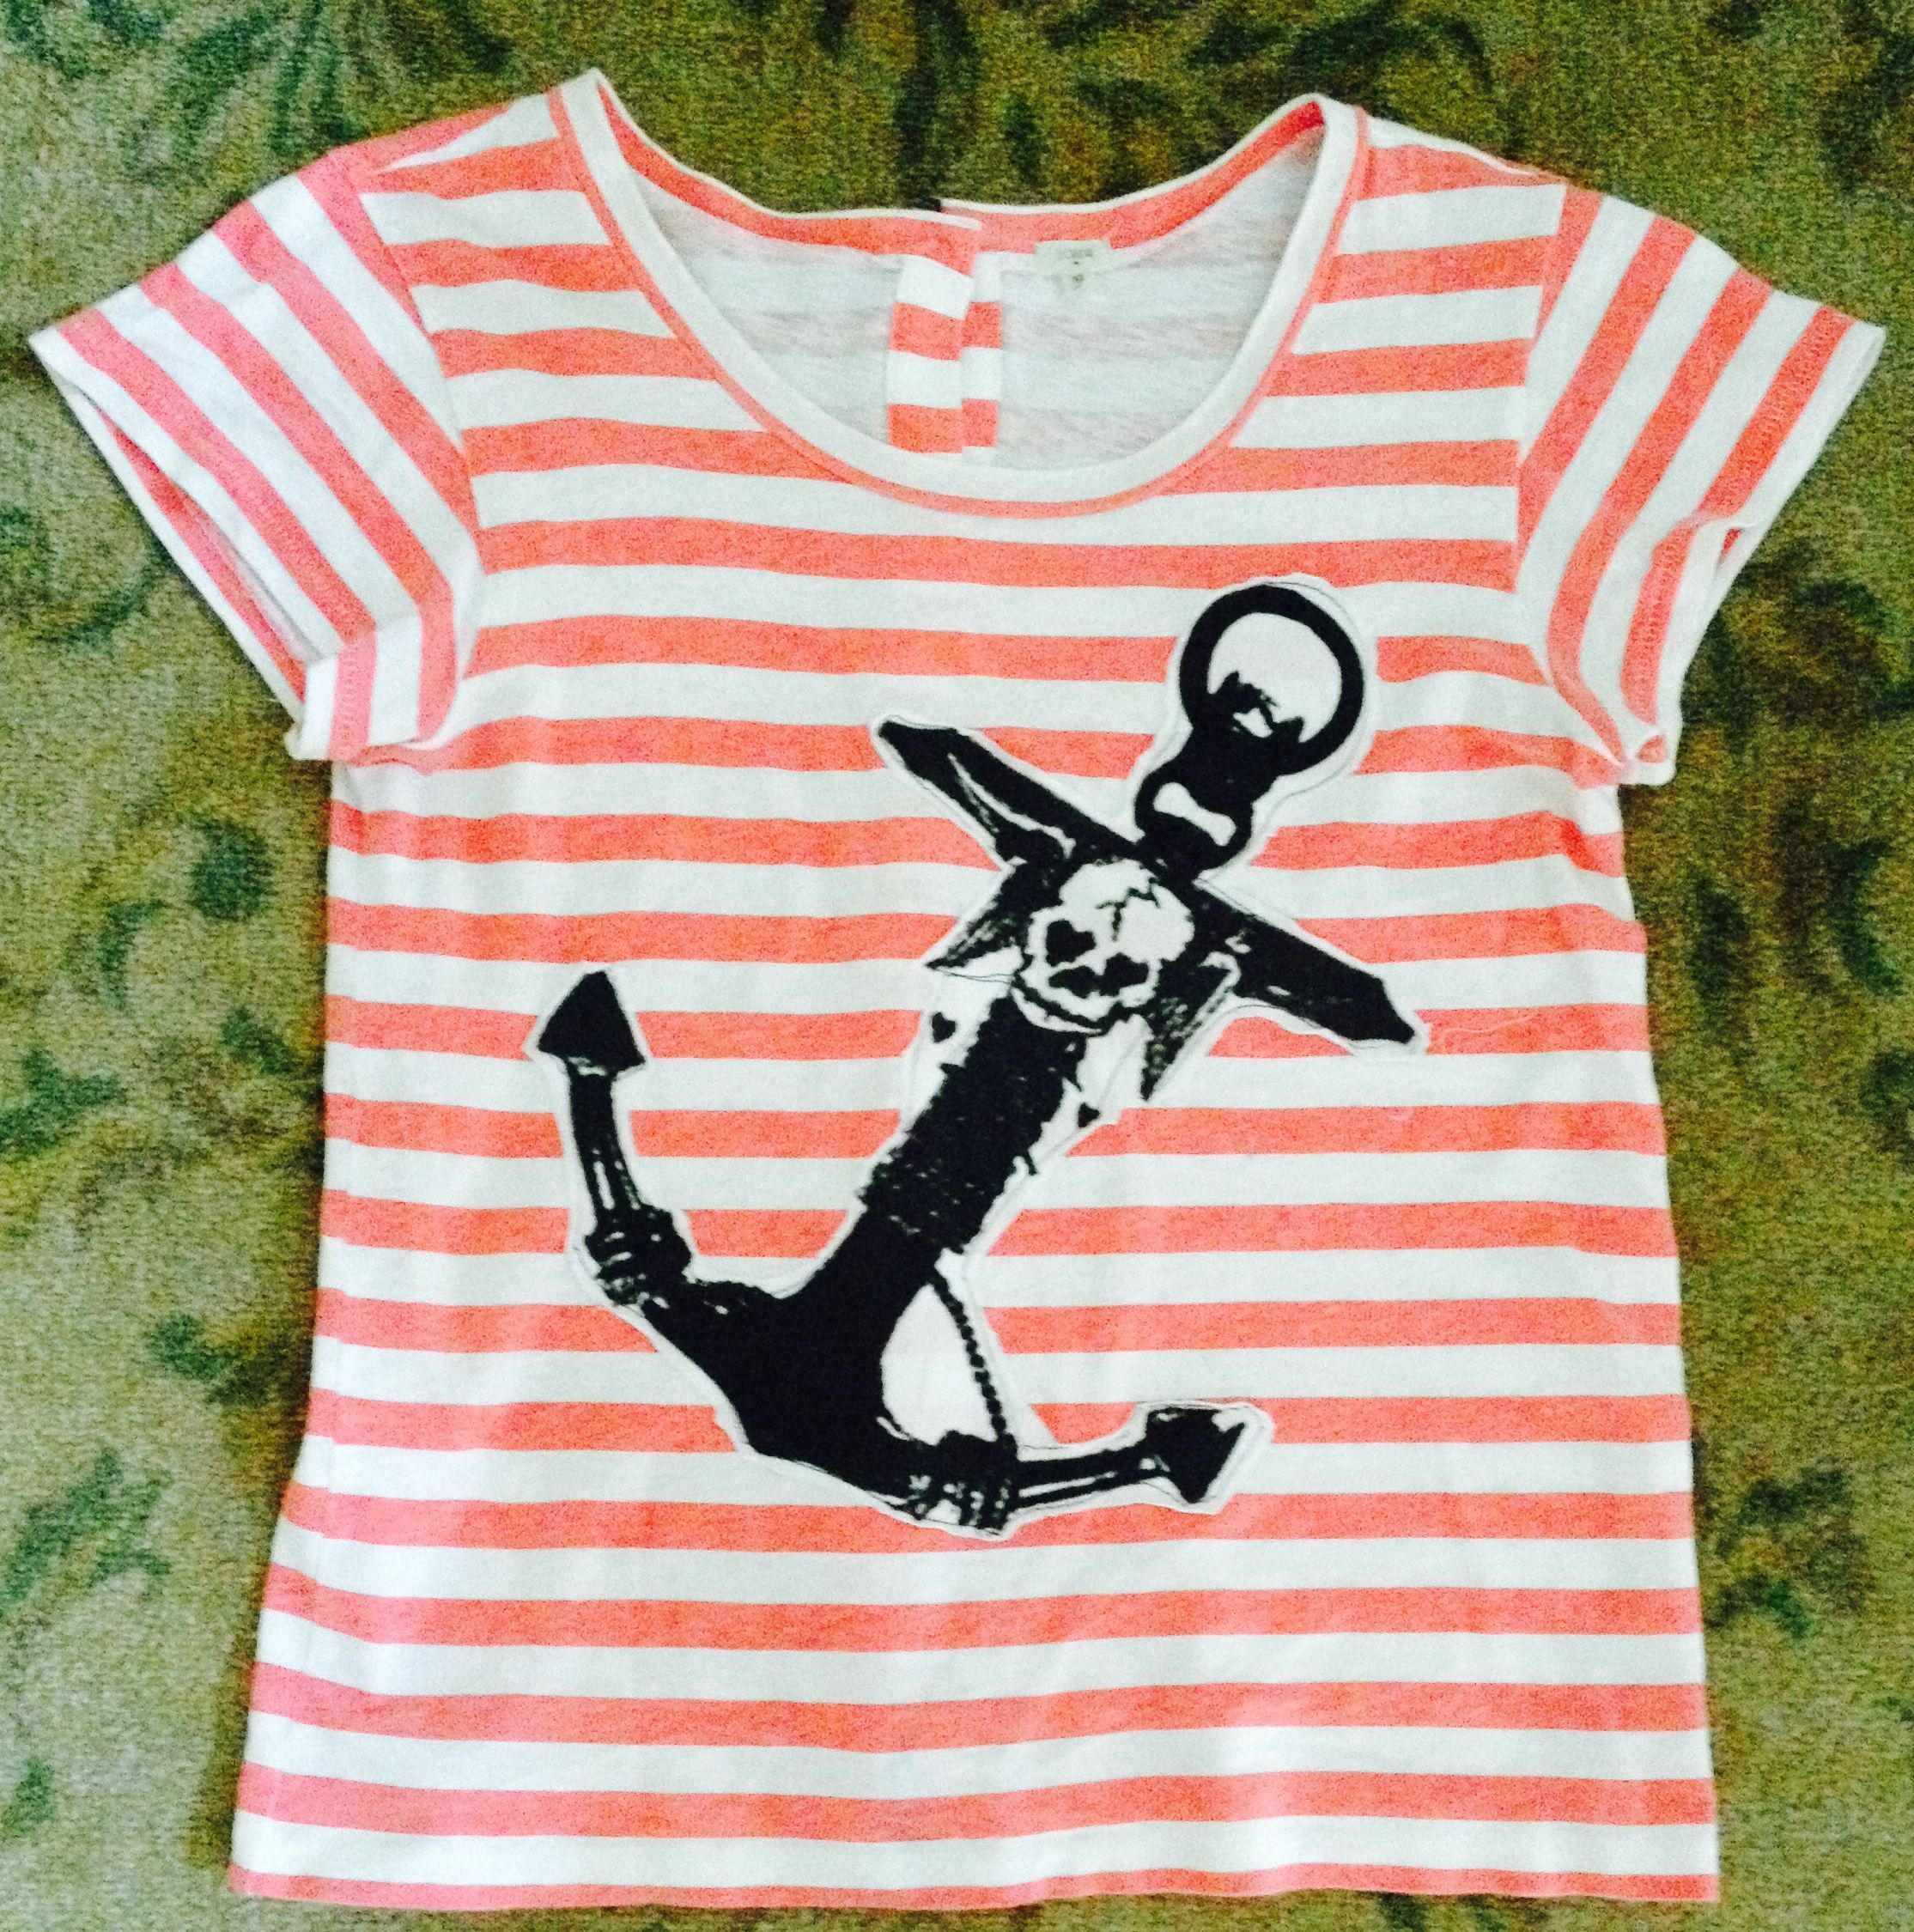 D.I.Y.  T-shirt. Anchor deconstructed from another t-shirt